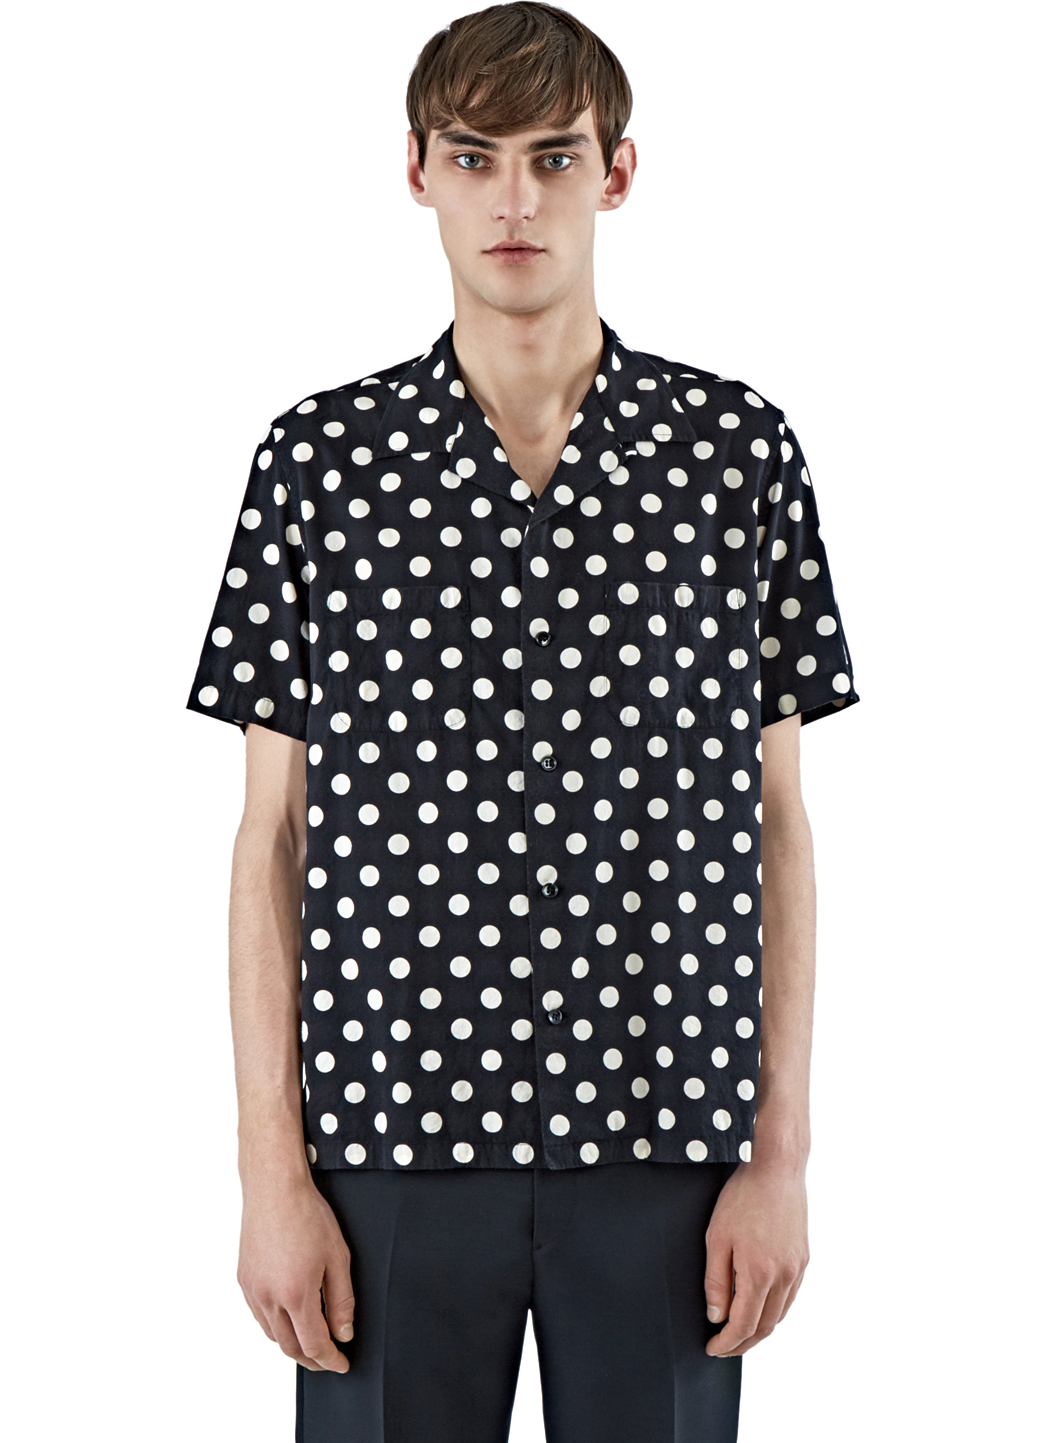 Free shipping and returns on Men's Polka Dot Shirts at celebtubesnews.ml Skip navigation. Earn $20 Notes with Nordstrom Rewards. See details. Designer. Women Men Kids Home & Gifts Beauty Sale What's Now. Search. Sign In. Black Grey White Beige Brown Metallic Purple Blue Green Yellow Orange Pink Red Off-white. Show Price. Under $25 $25 – $